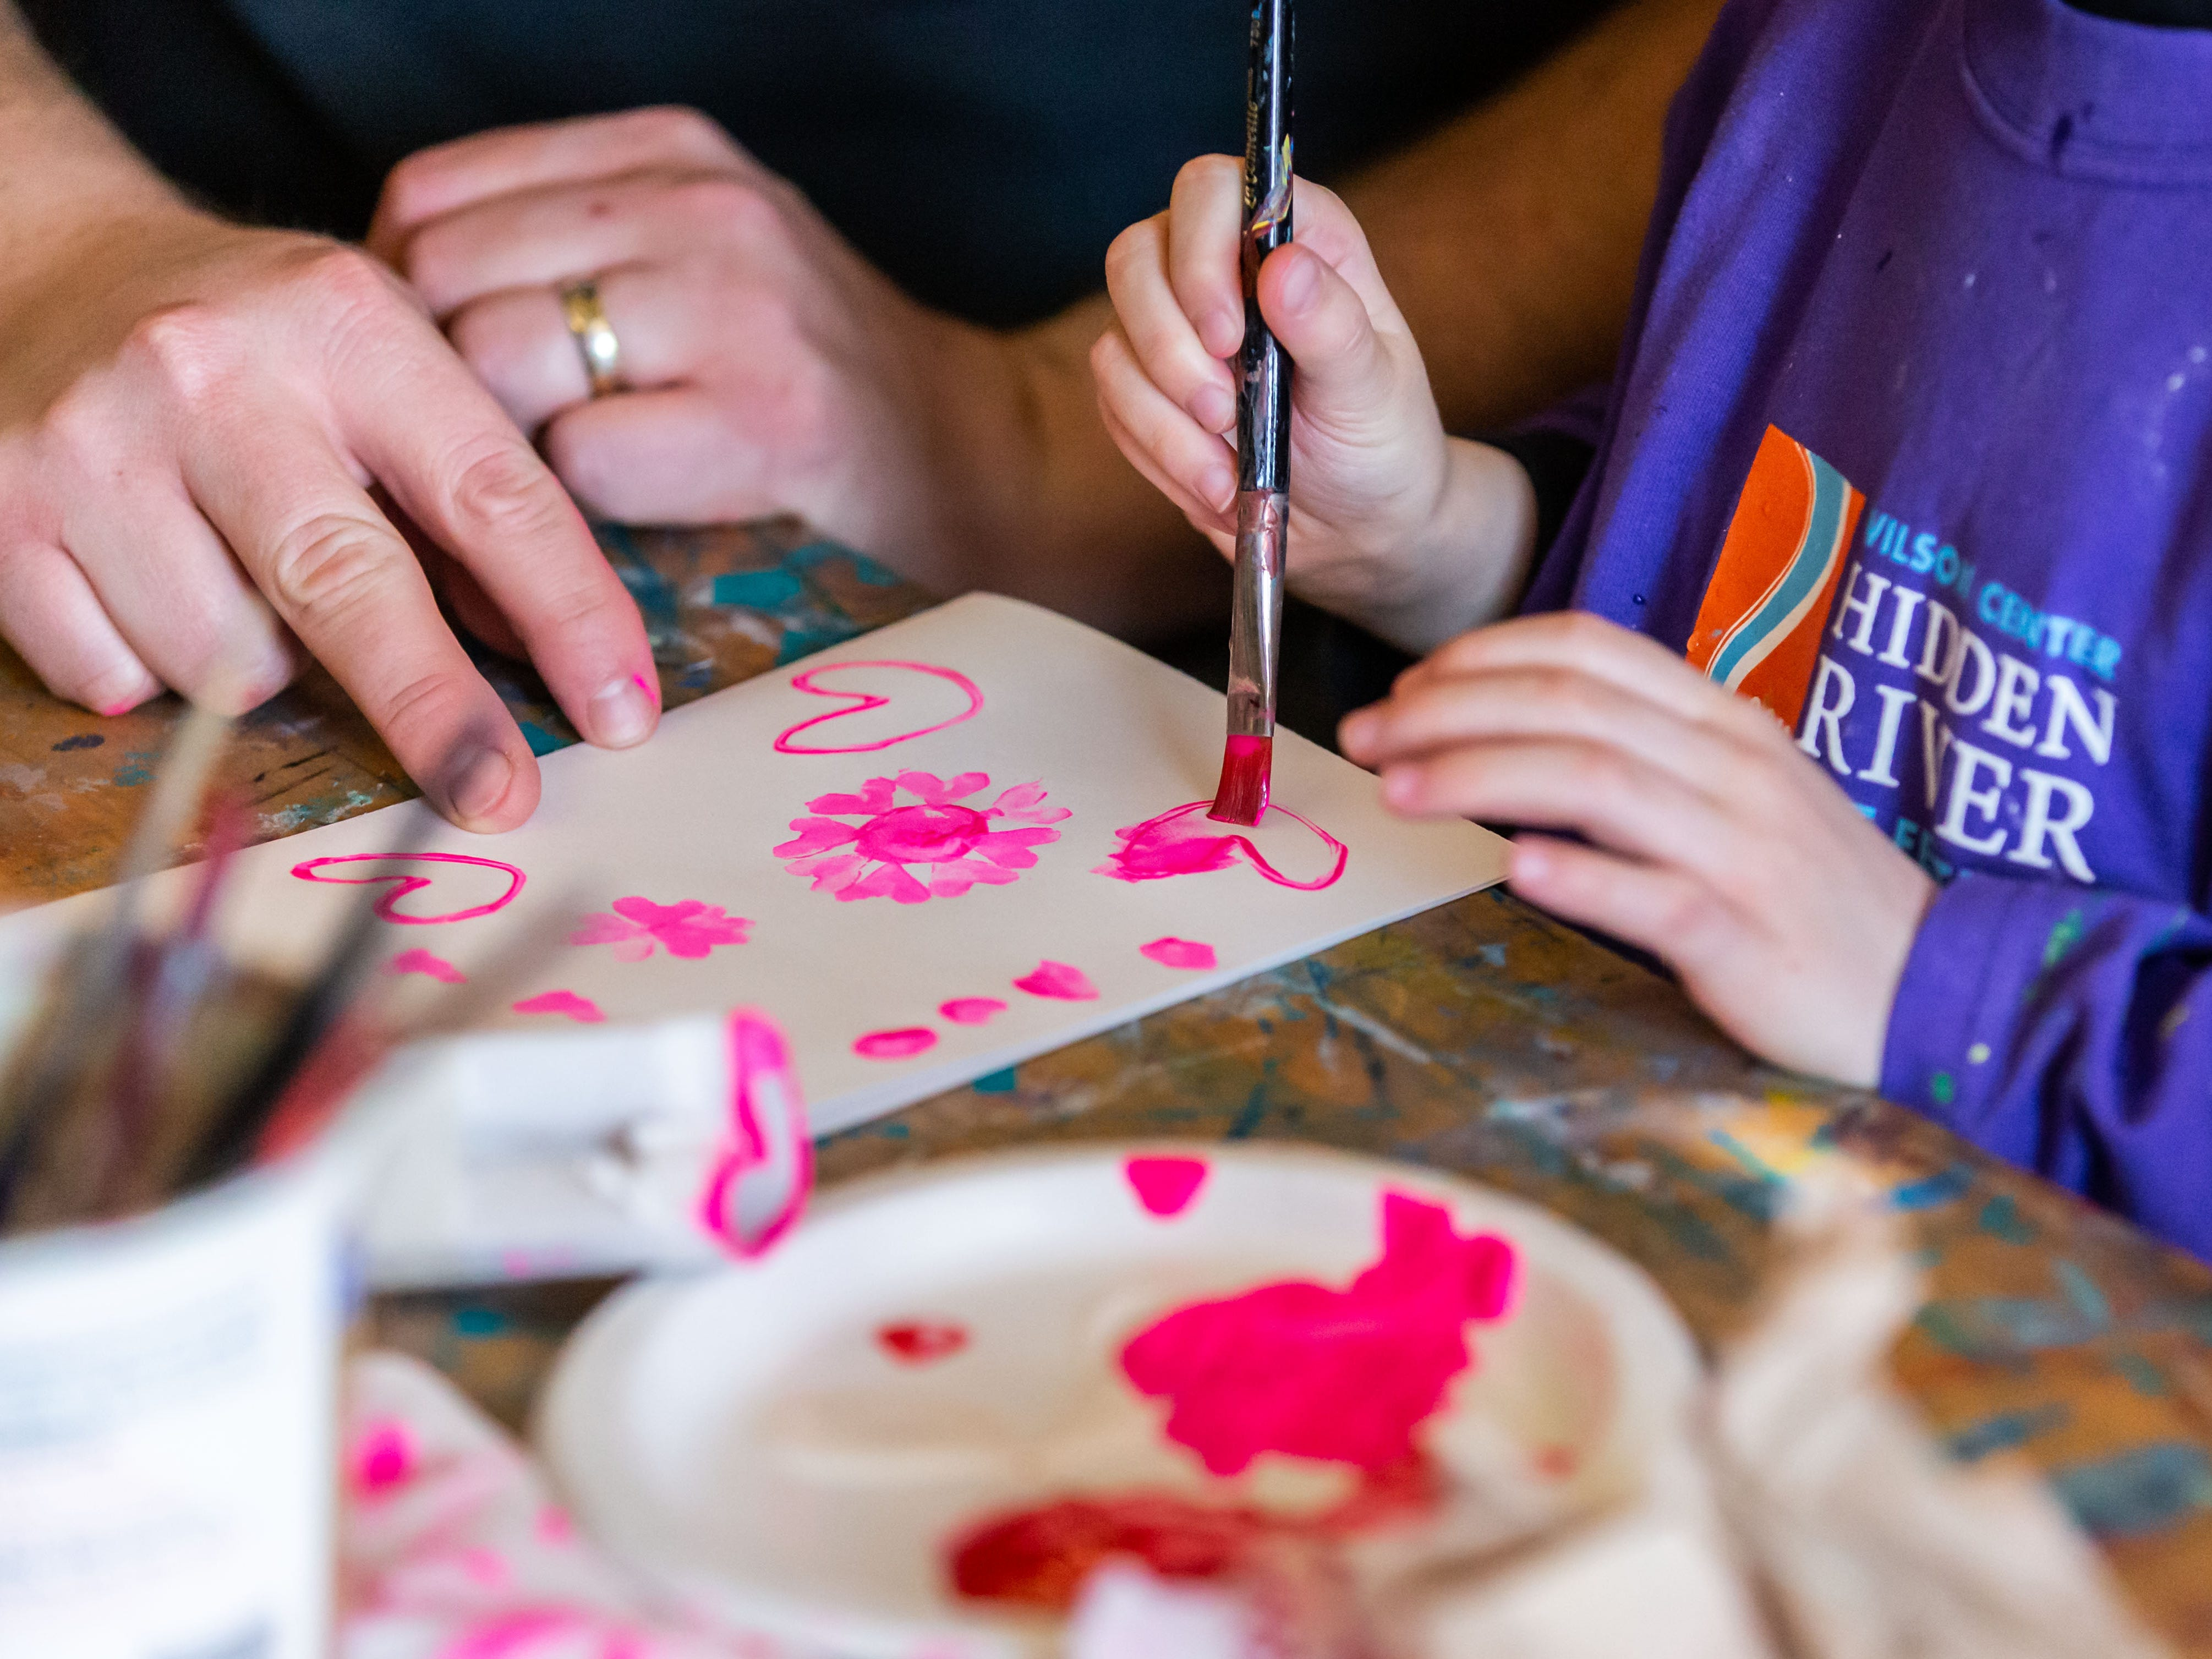 Participants create printed Valentine's Day cards with Burlington artist Tiffany Knopow during the Free Family Art Workshop at the Sharon Lynne Wilson Center for the Arts in Brookfield on Saturday, Feb. 9, 2019. The free art workshops are held from 10 a.m. to noon on the second Saturday of each month. For more info visit wilson-center.com/classes.